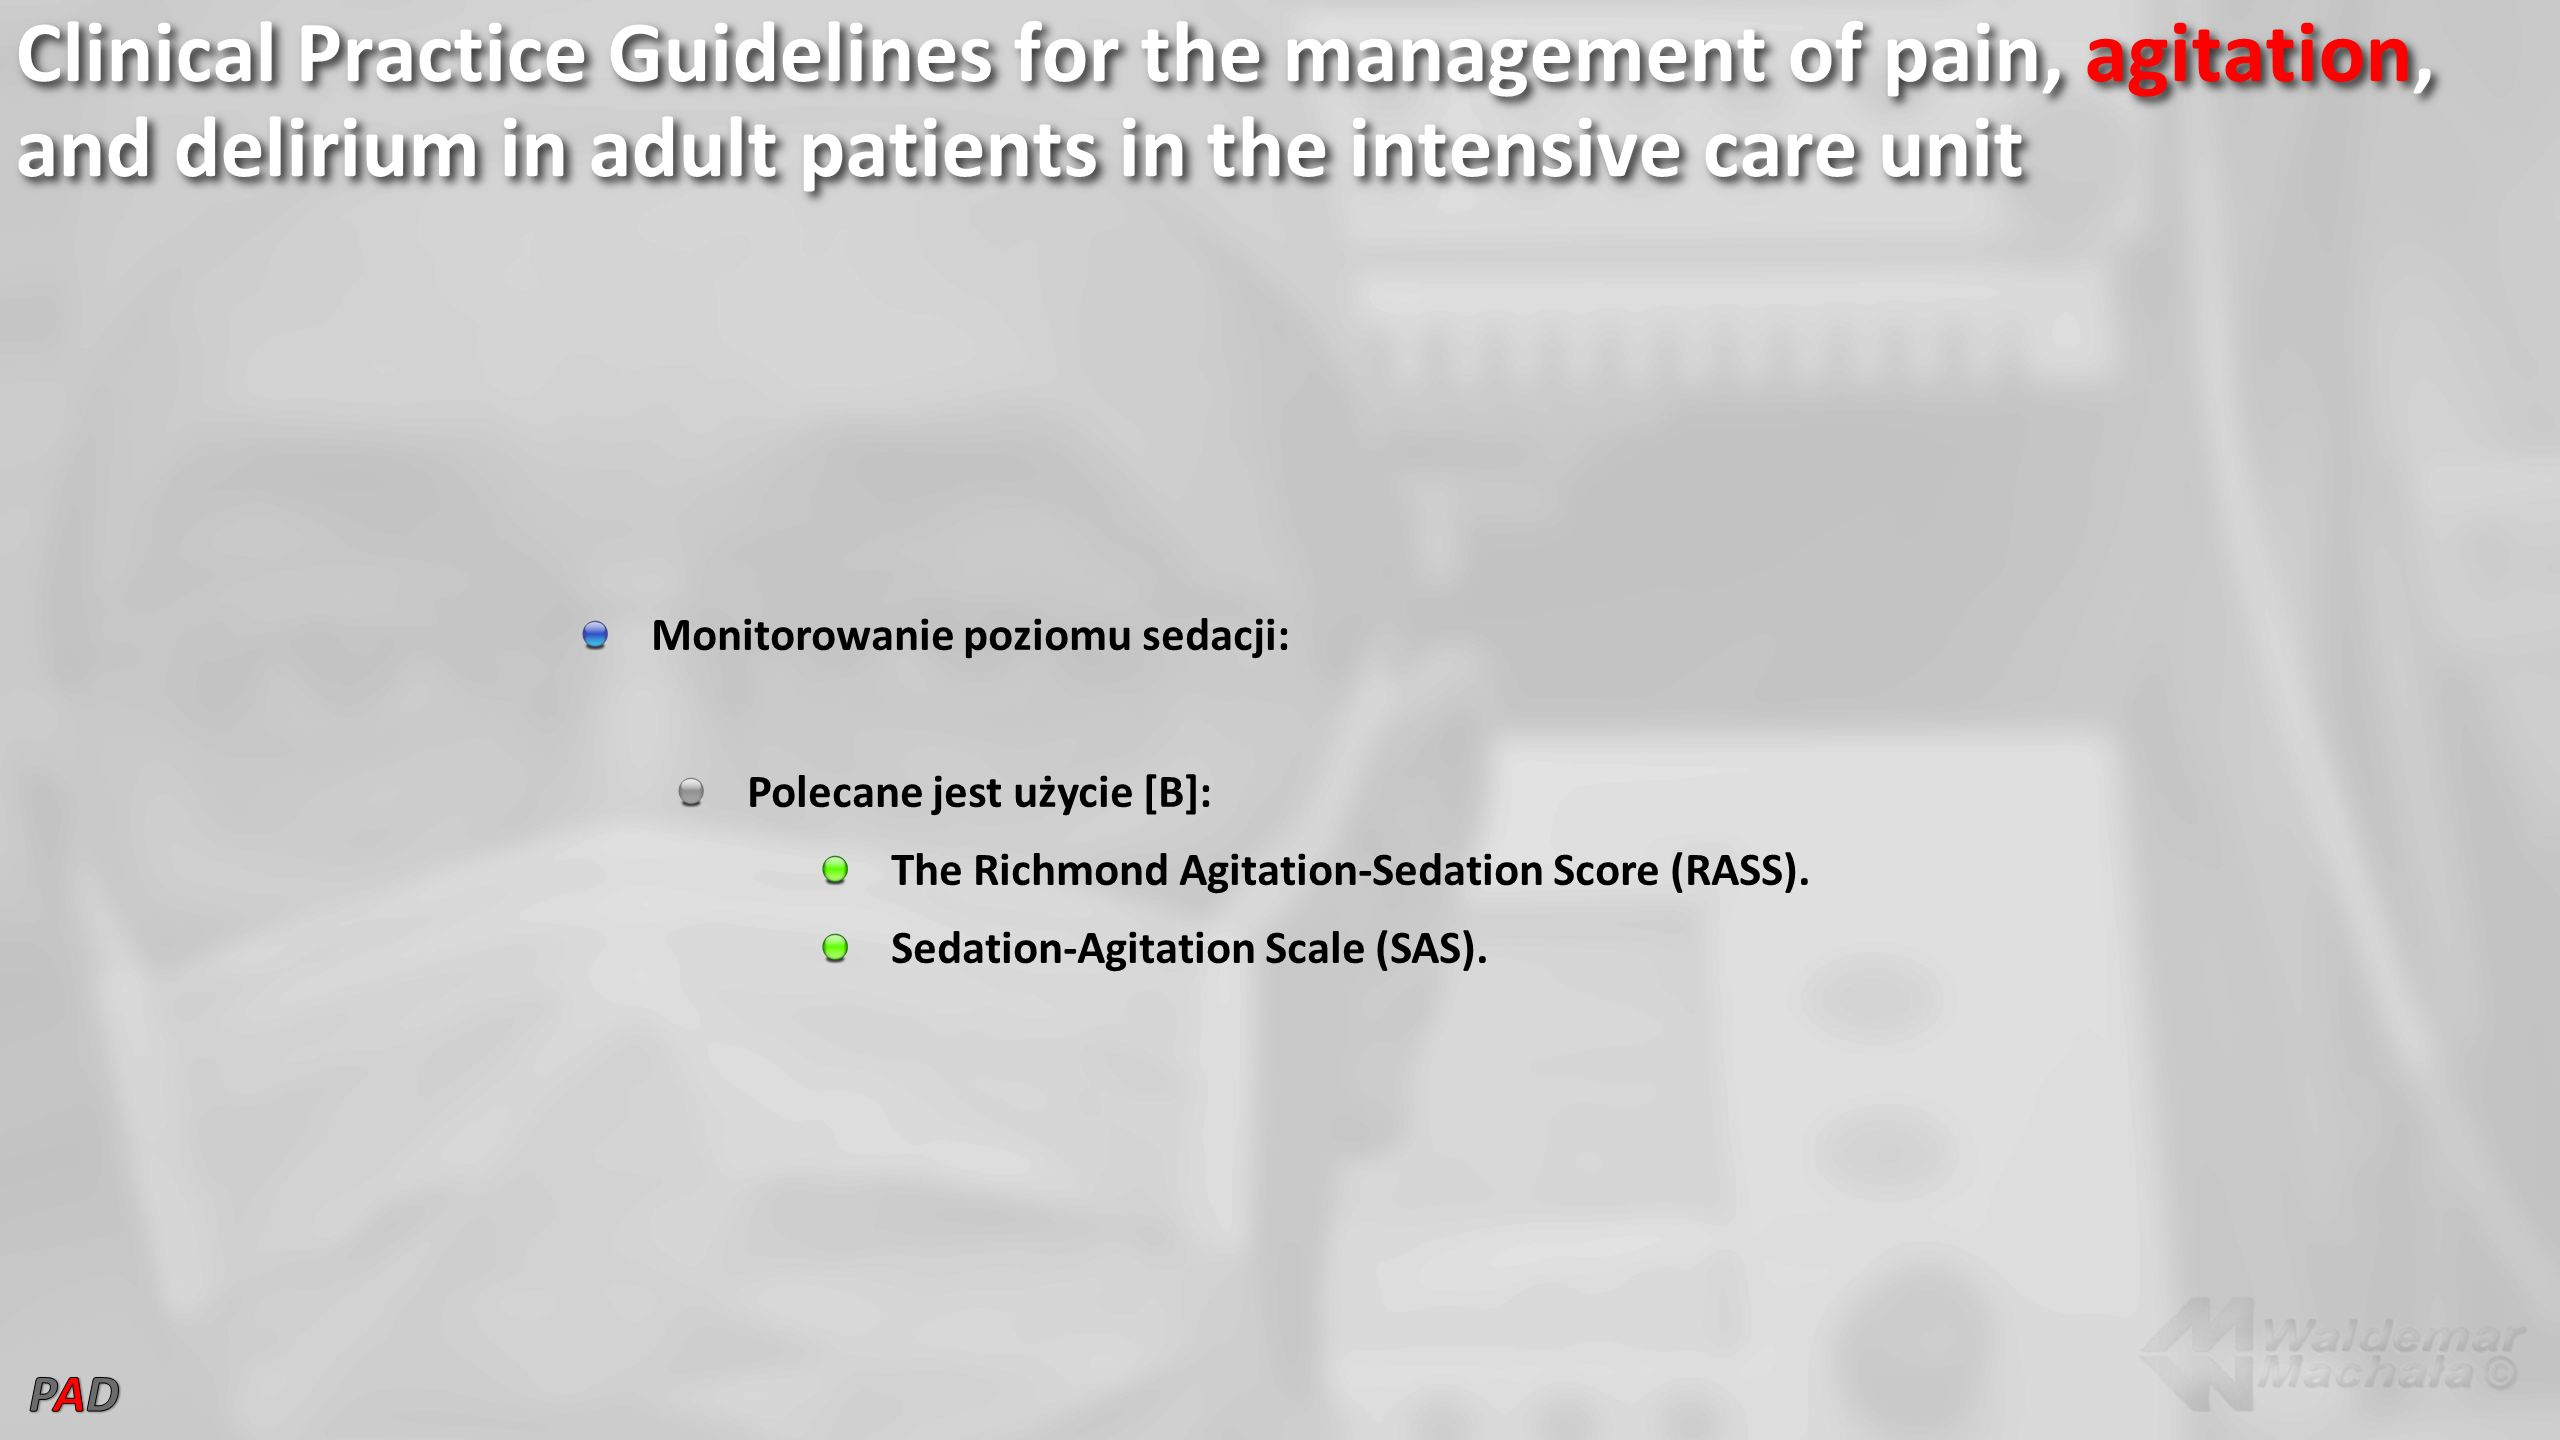 Clinical Practice Guidelines for the management of pain, agitation, and delirium in adult patients in the intensive care unit Monitorowanie poziomu sedacji: Polecane jest użycie [B]: The Richmond Agitation-Sedation Score (RASS).